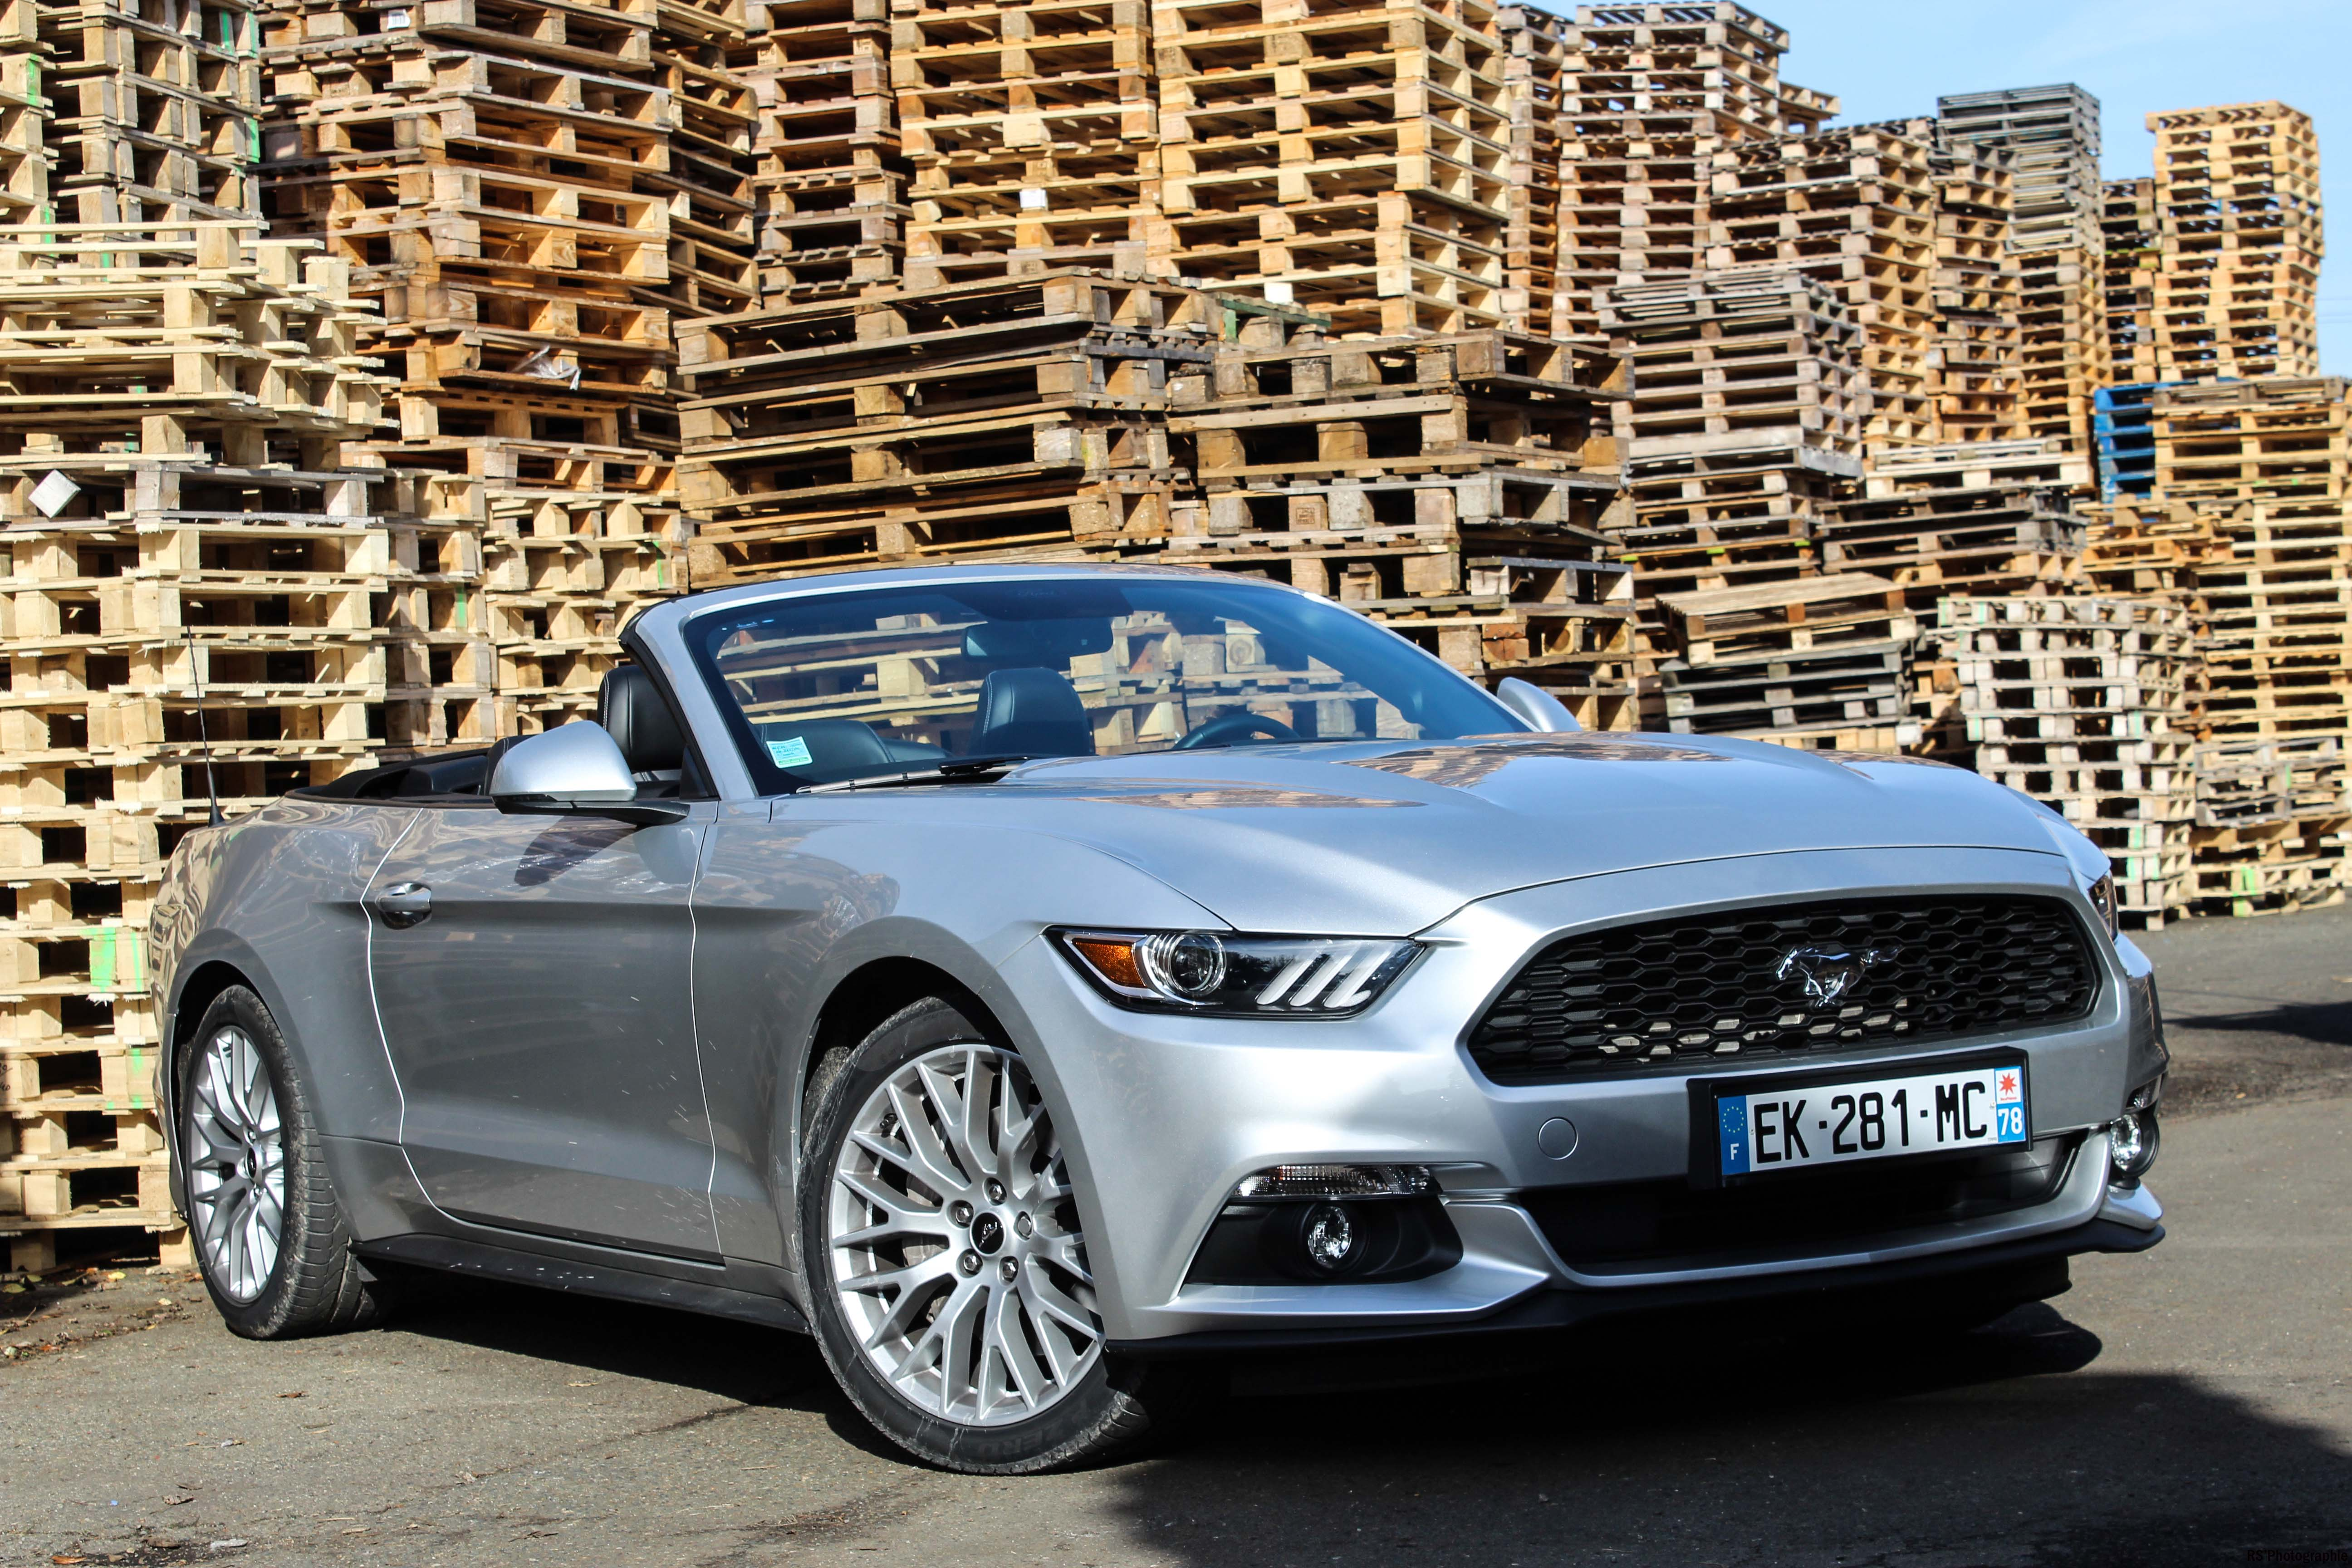 fordmustangeconvertible23-ford-mustang-convertible-ecoboost-avant-front-Arnaud Demasier-RSPhotographie